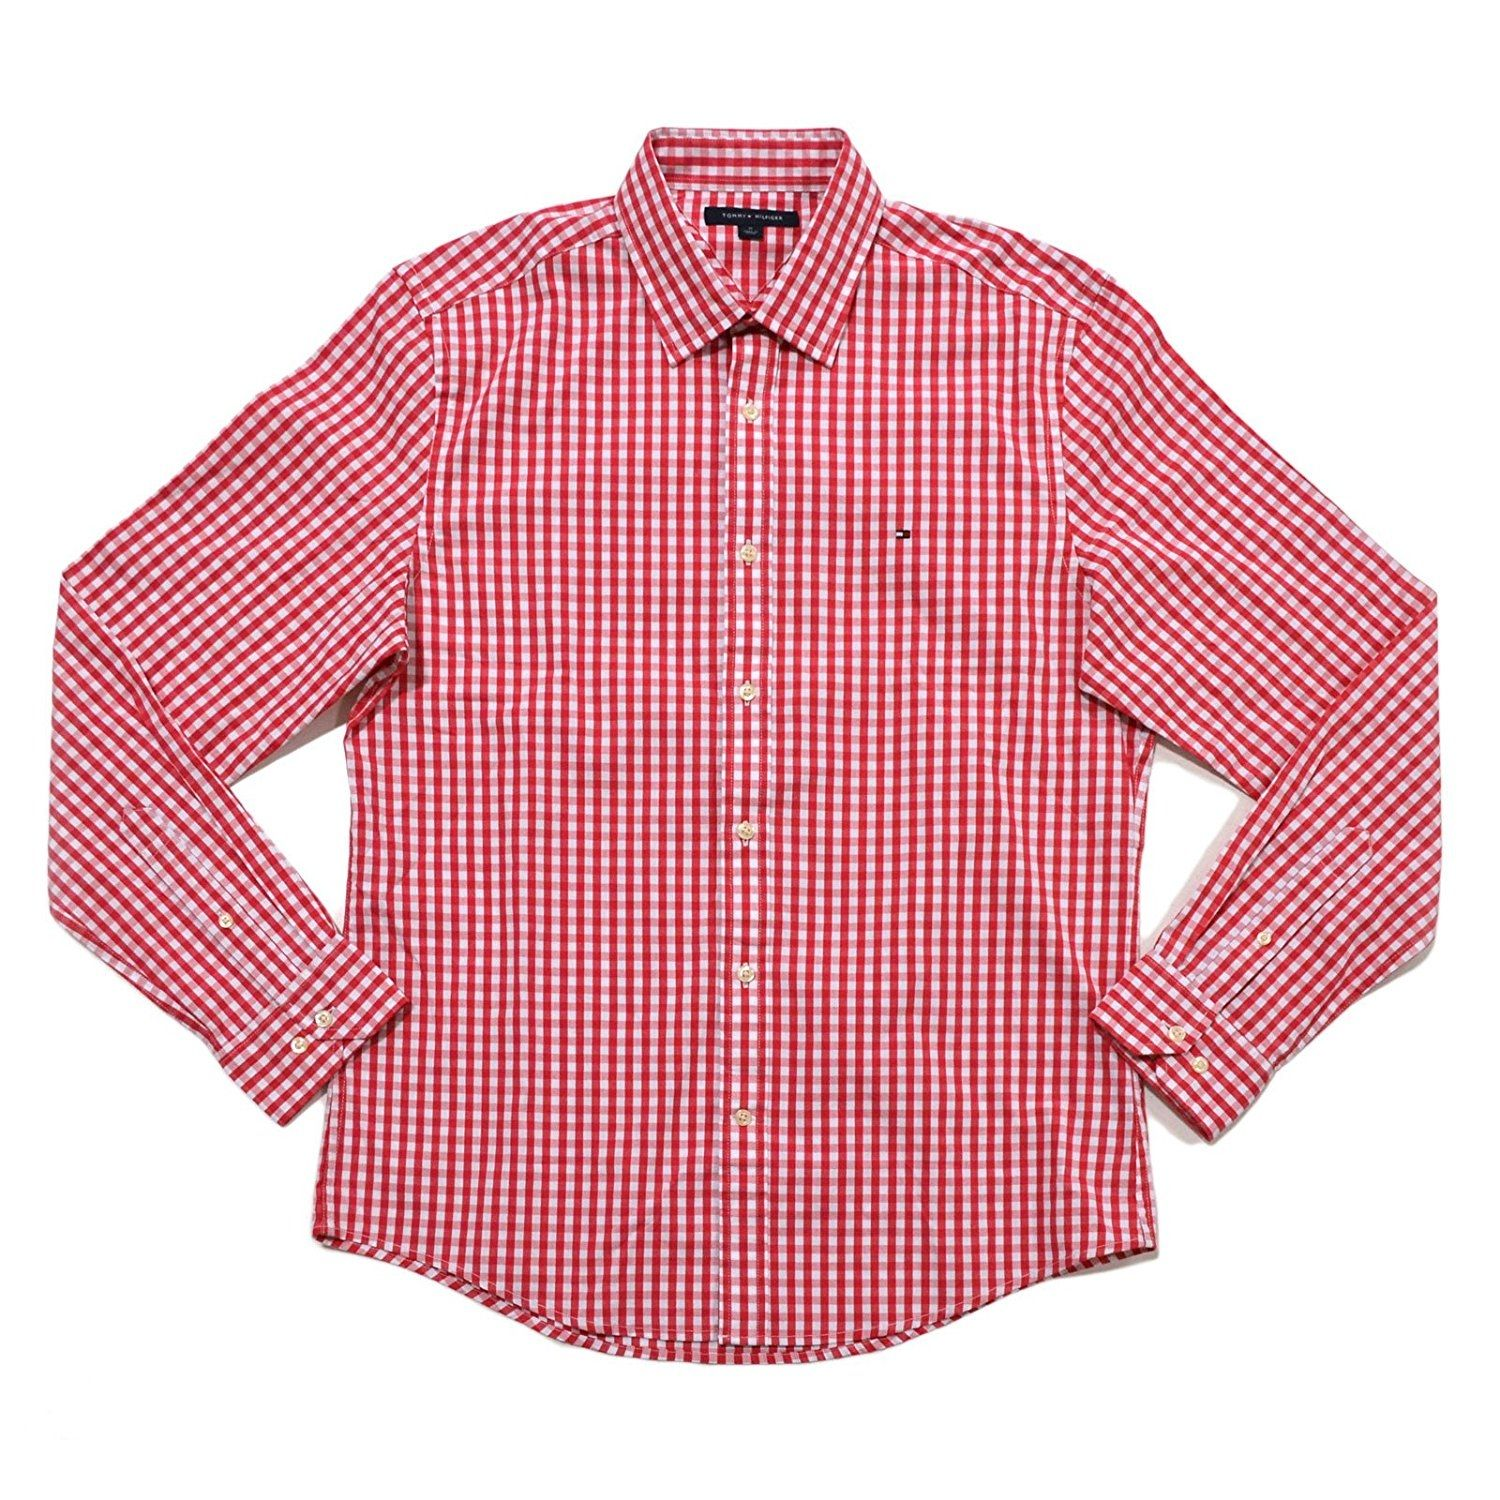 Tommy Hilfiger Men Gingham Stretch Button Up Shirt - Red Price in ... 445c172f2